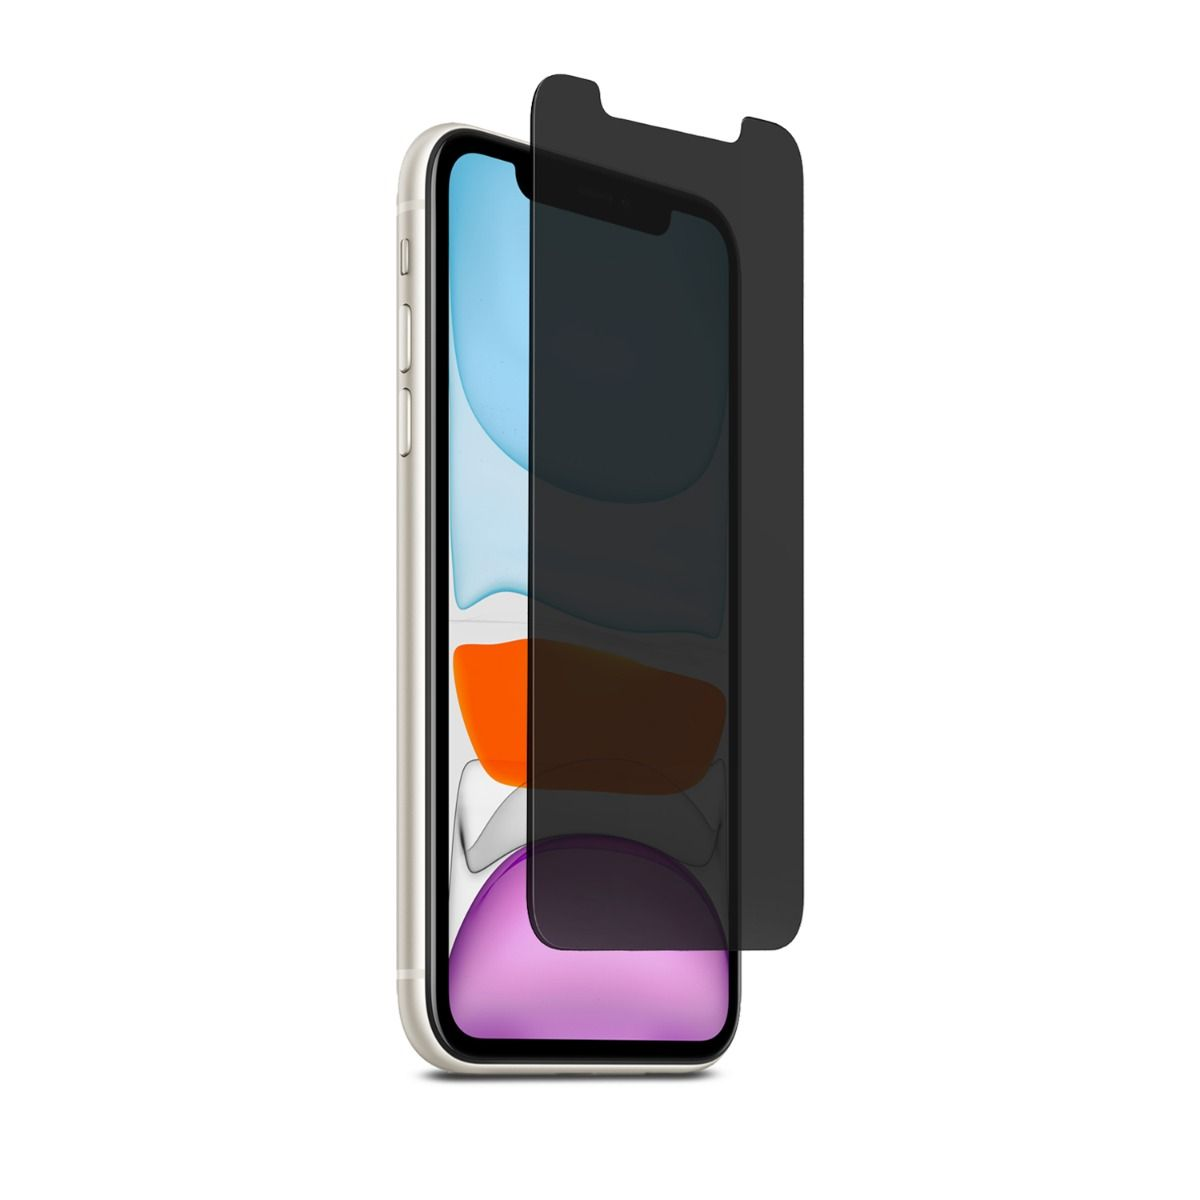 Apple iPhone 11 2-Way Privacy Glass Screen Protector with Alignment Tray